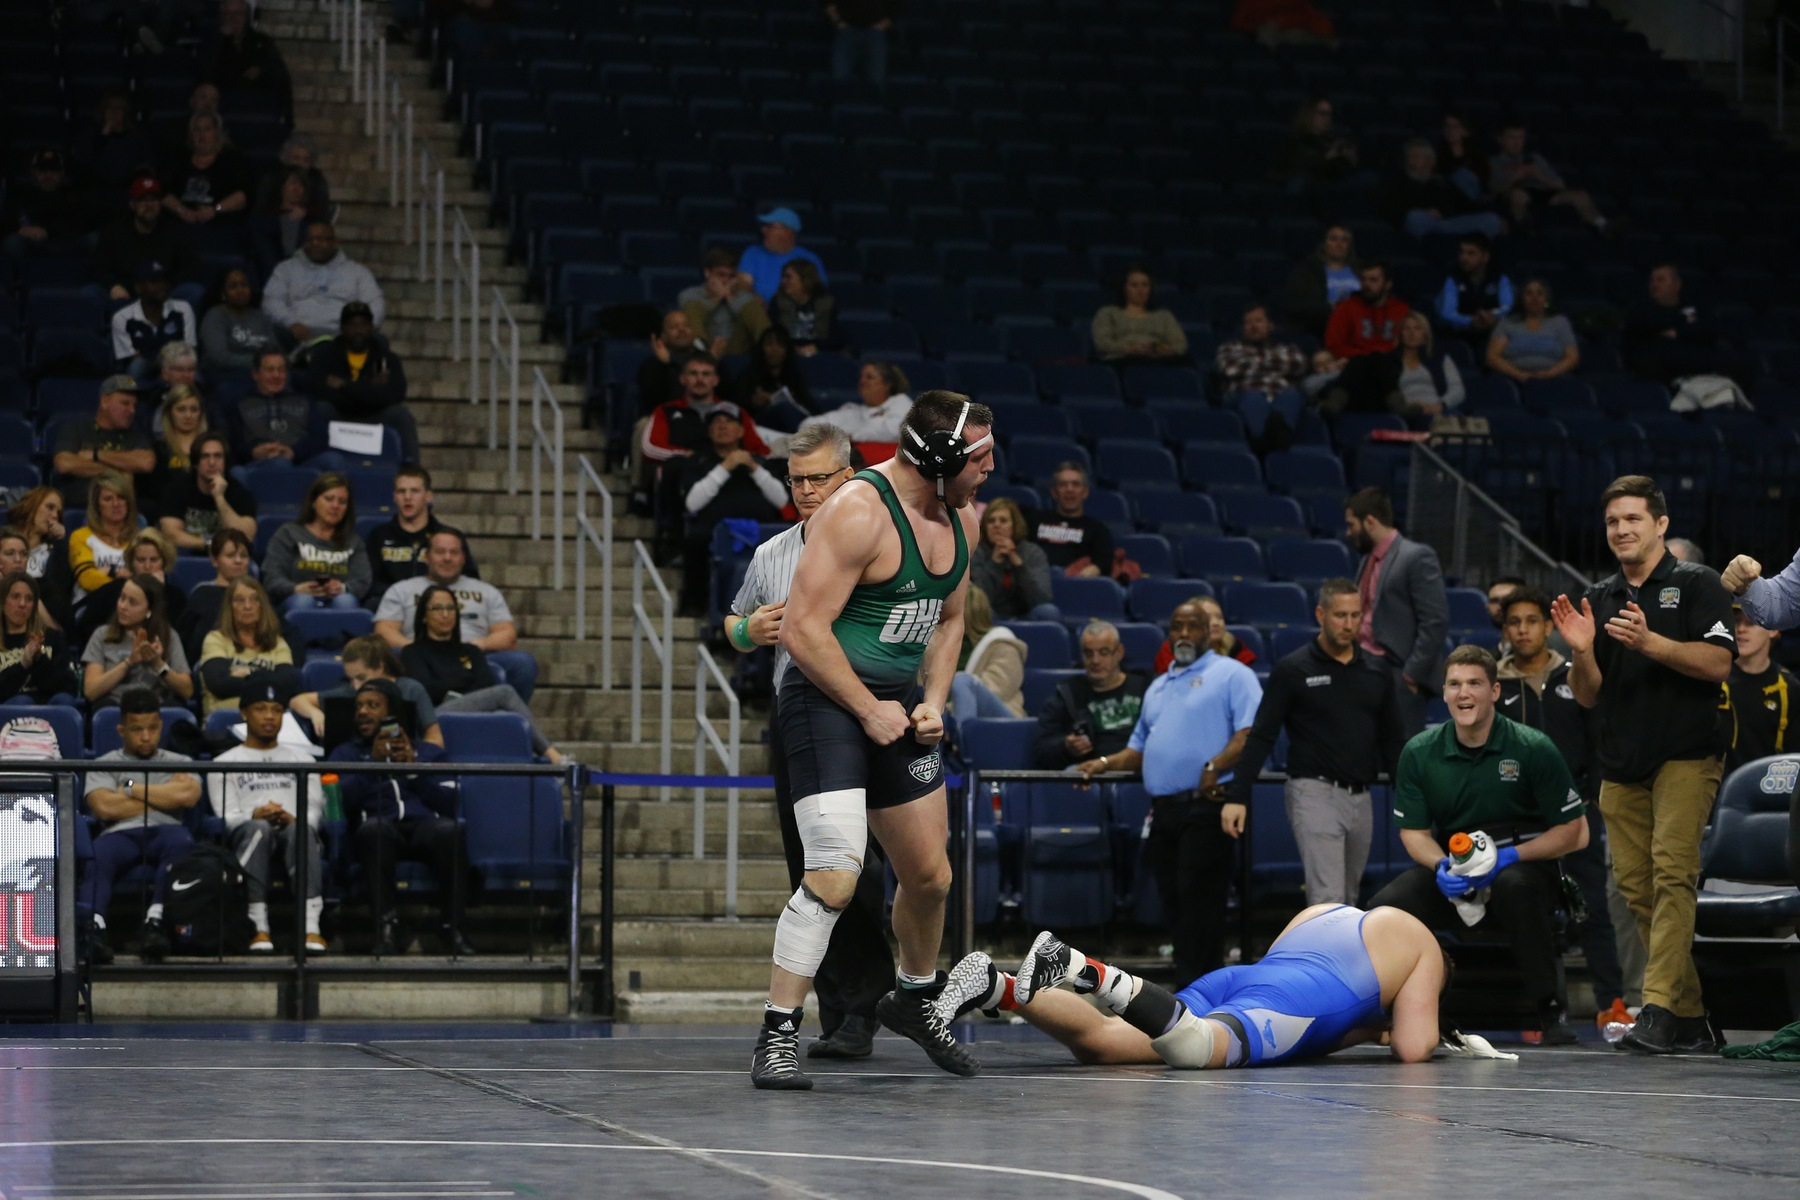 Kelly, Parker Qualify For Nationals To Highlight Final Day Of 2019 MAC Championships For Ohio Wrestling